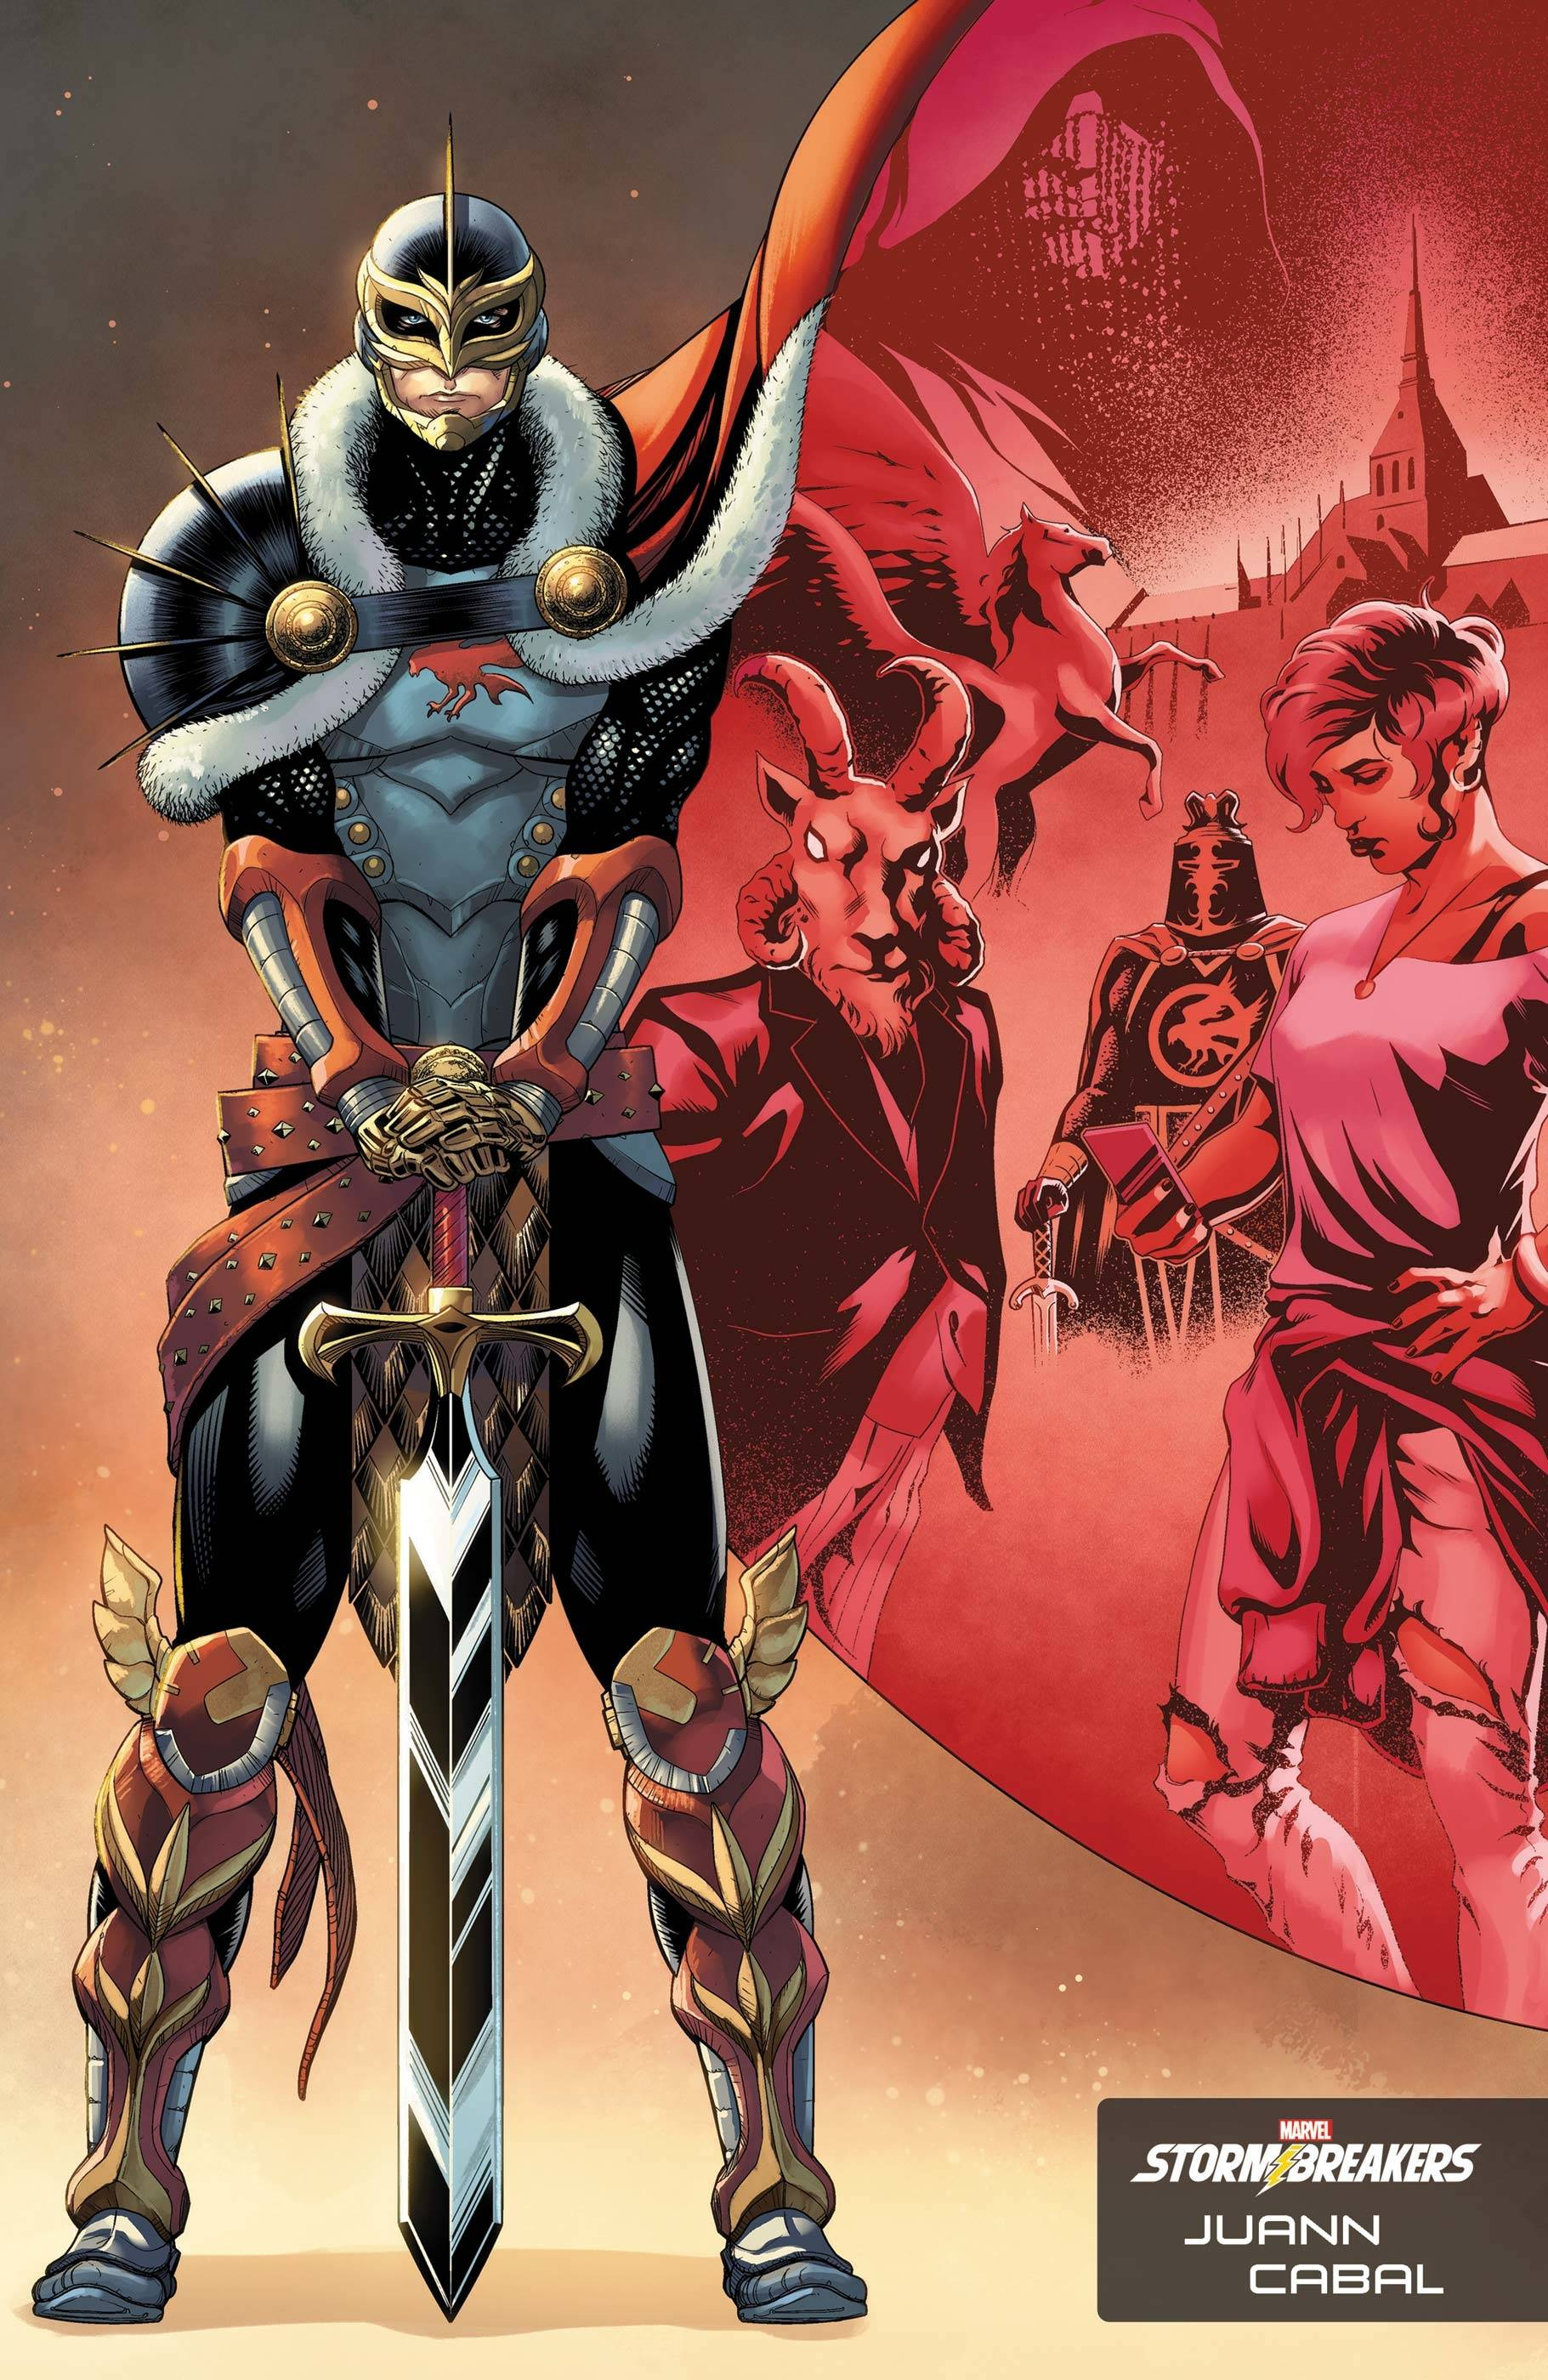 BLACK KNIGHT CURSE EBONY BLADE #1 (OF 5) CABAL STORMBREAKERS